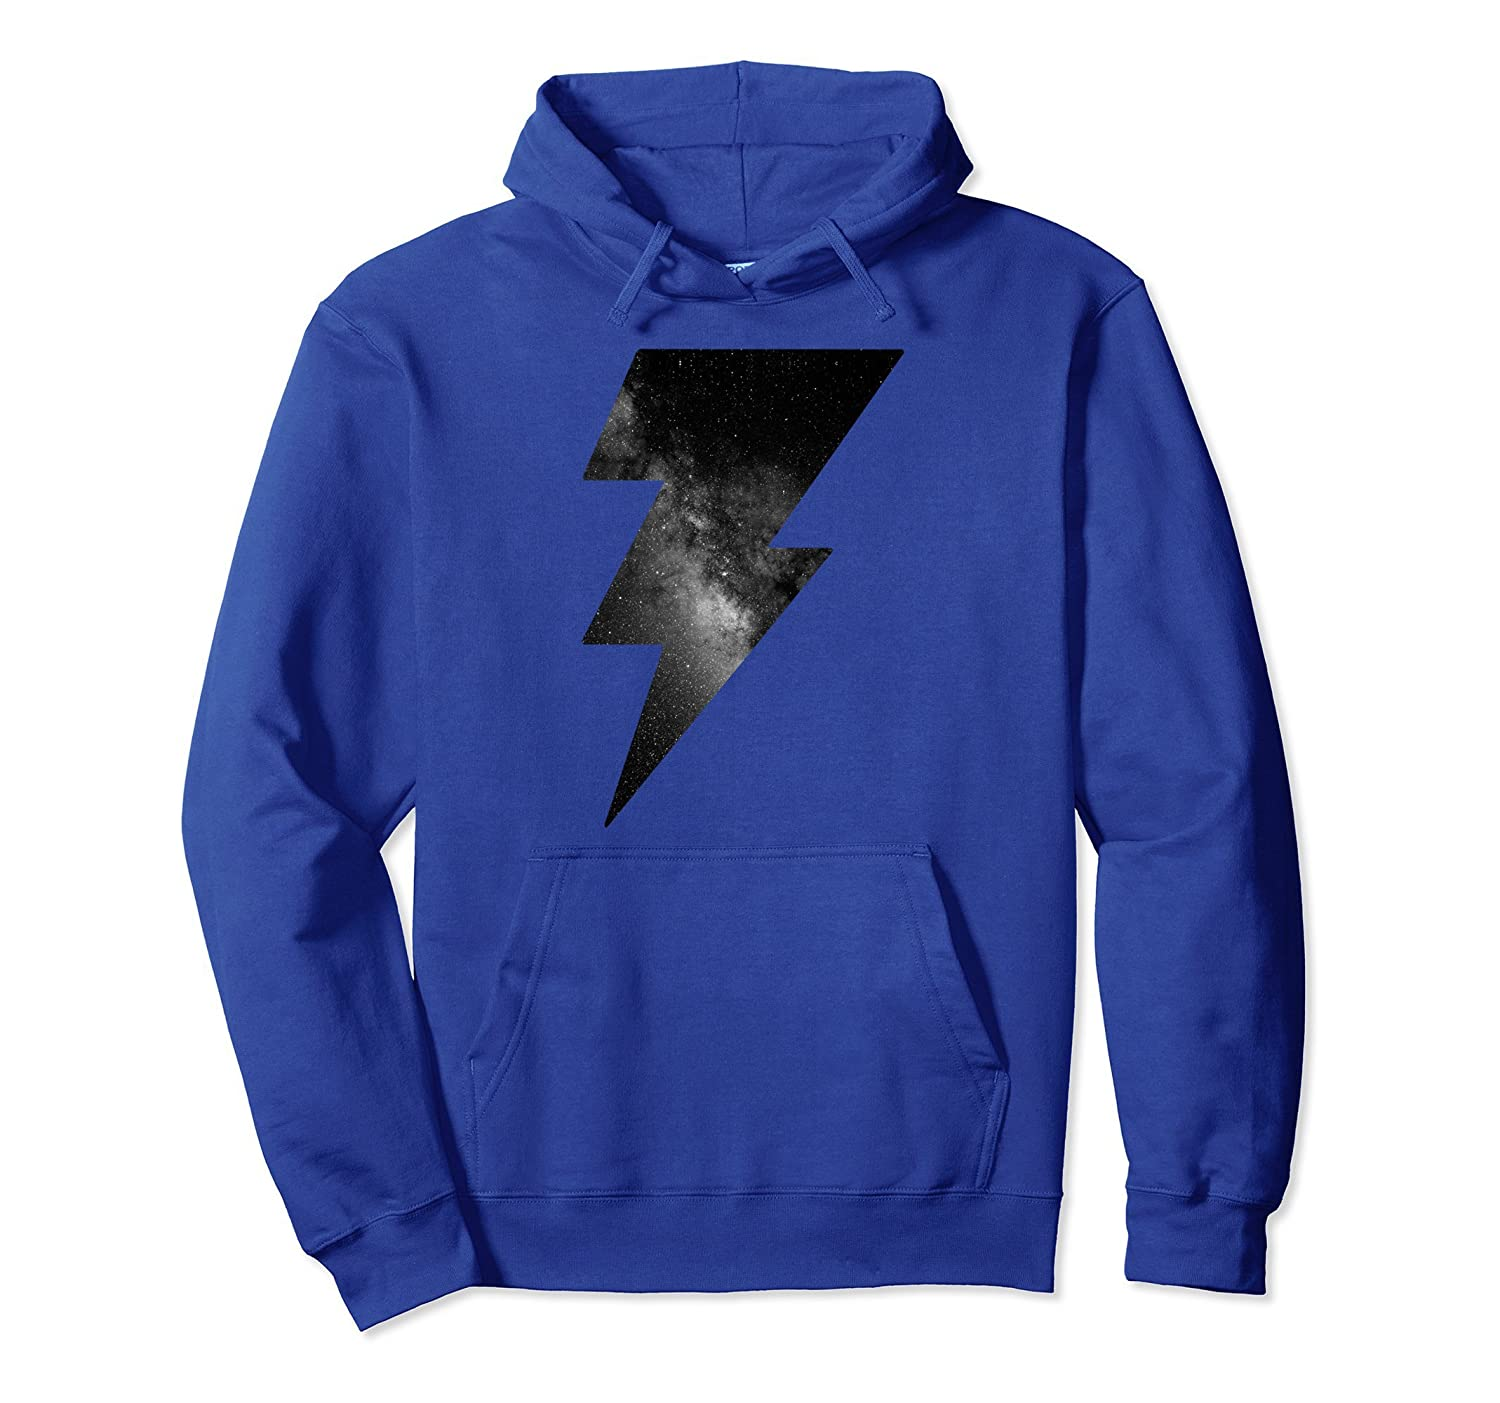 Awesome Black Lightning Bolt Hoodie - Mens & Womens Sizes-ah my shirt one gift